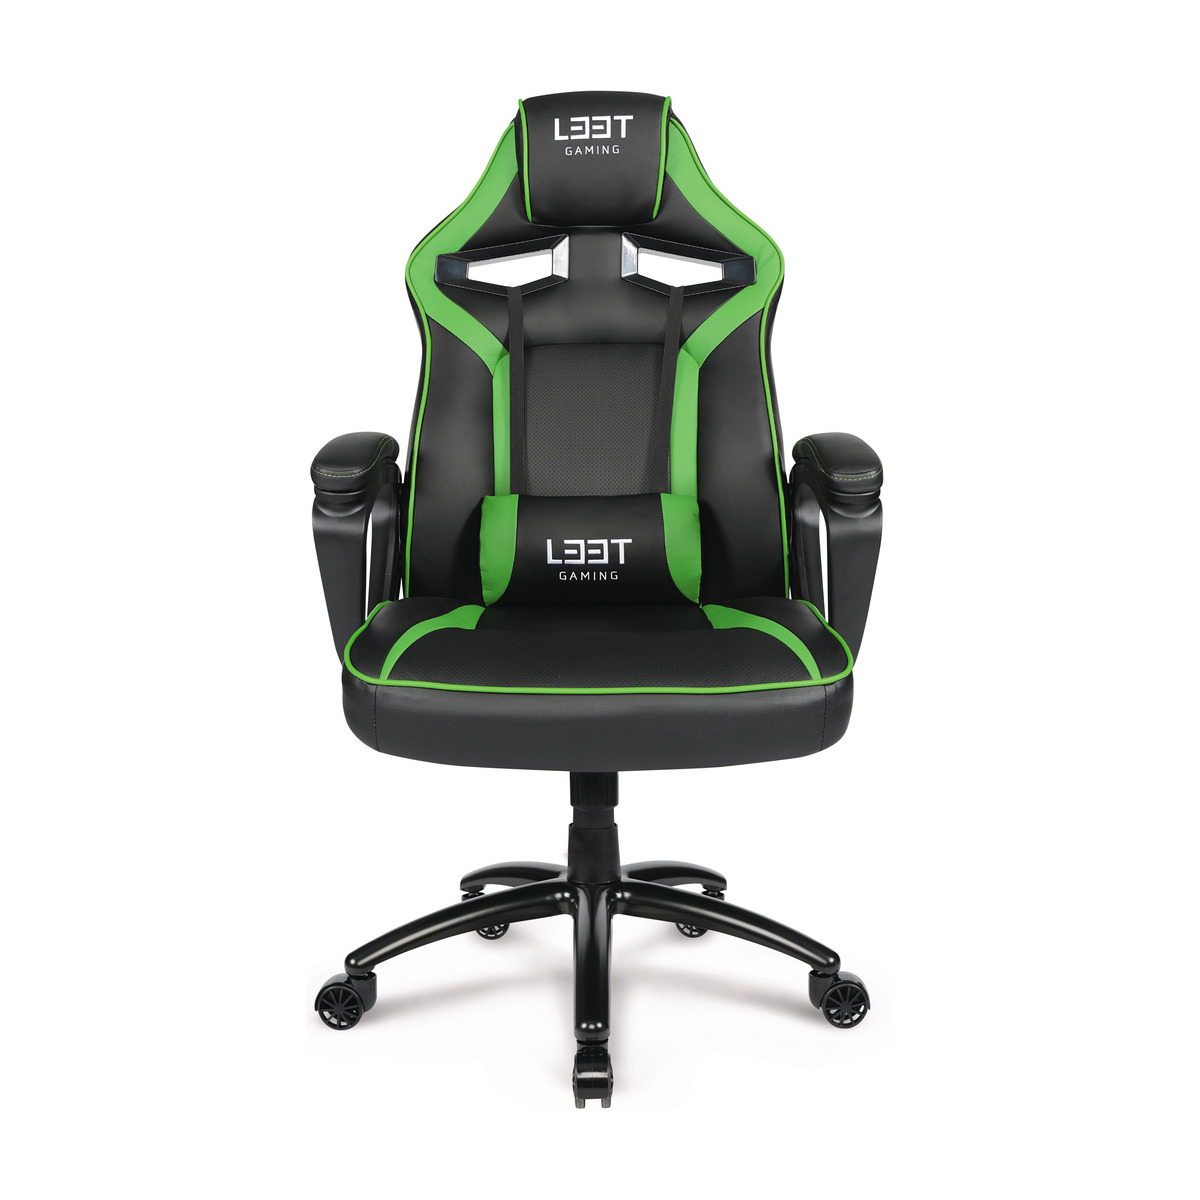 L33T EXTREME GAMING CHAIR GREEN